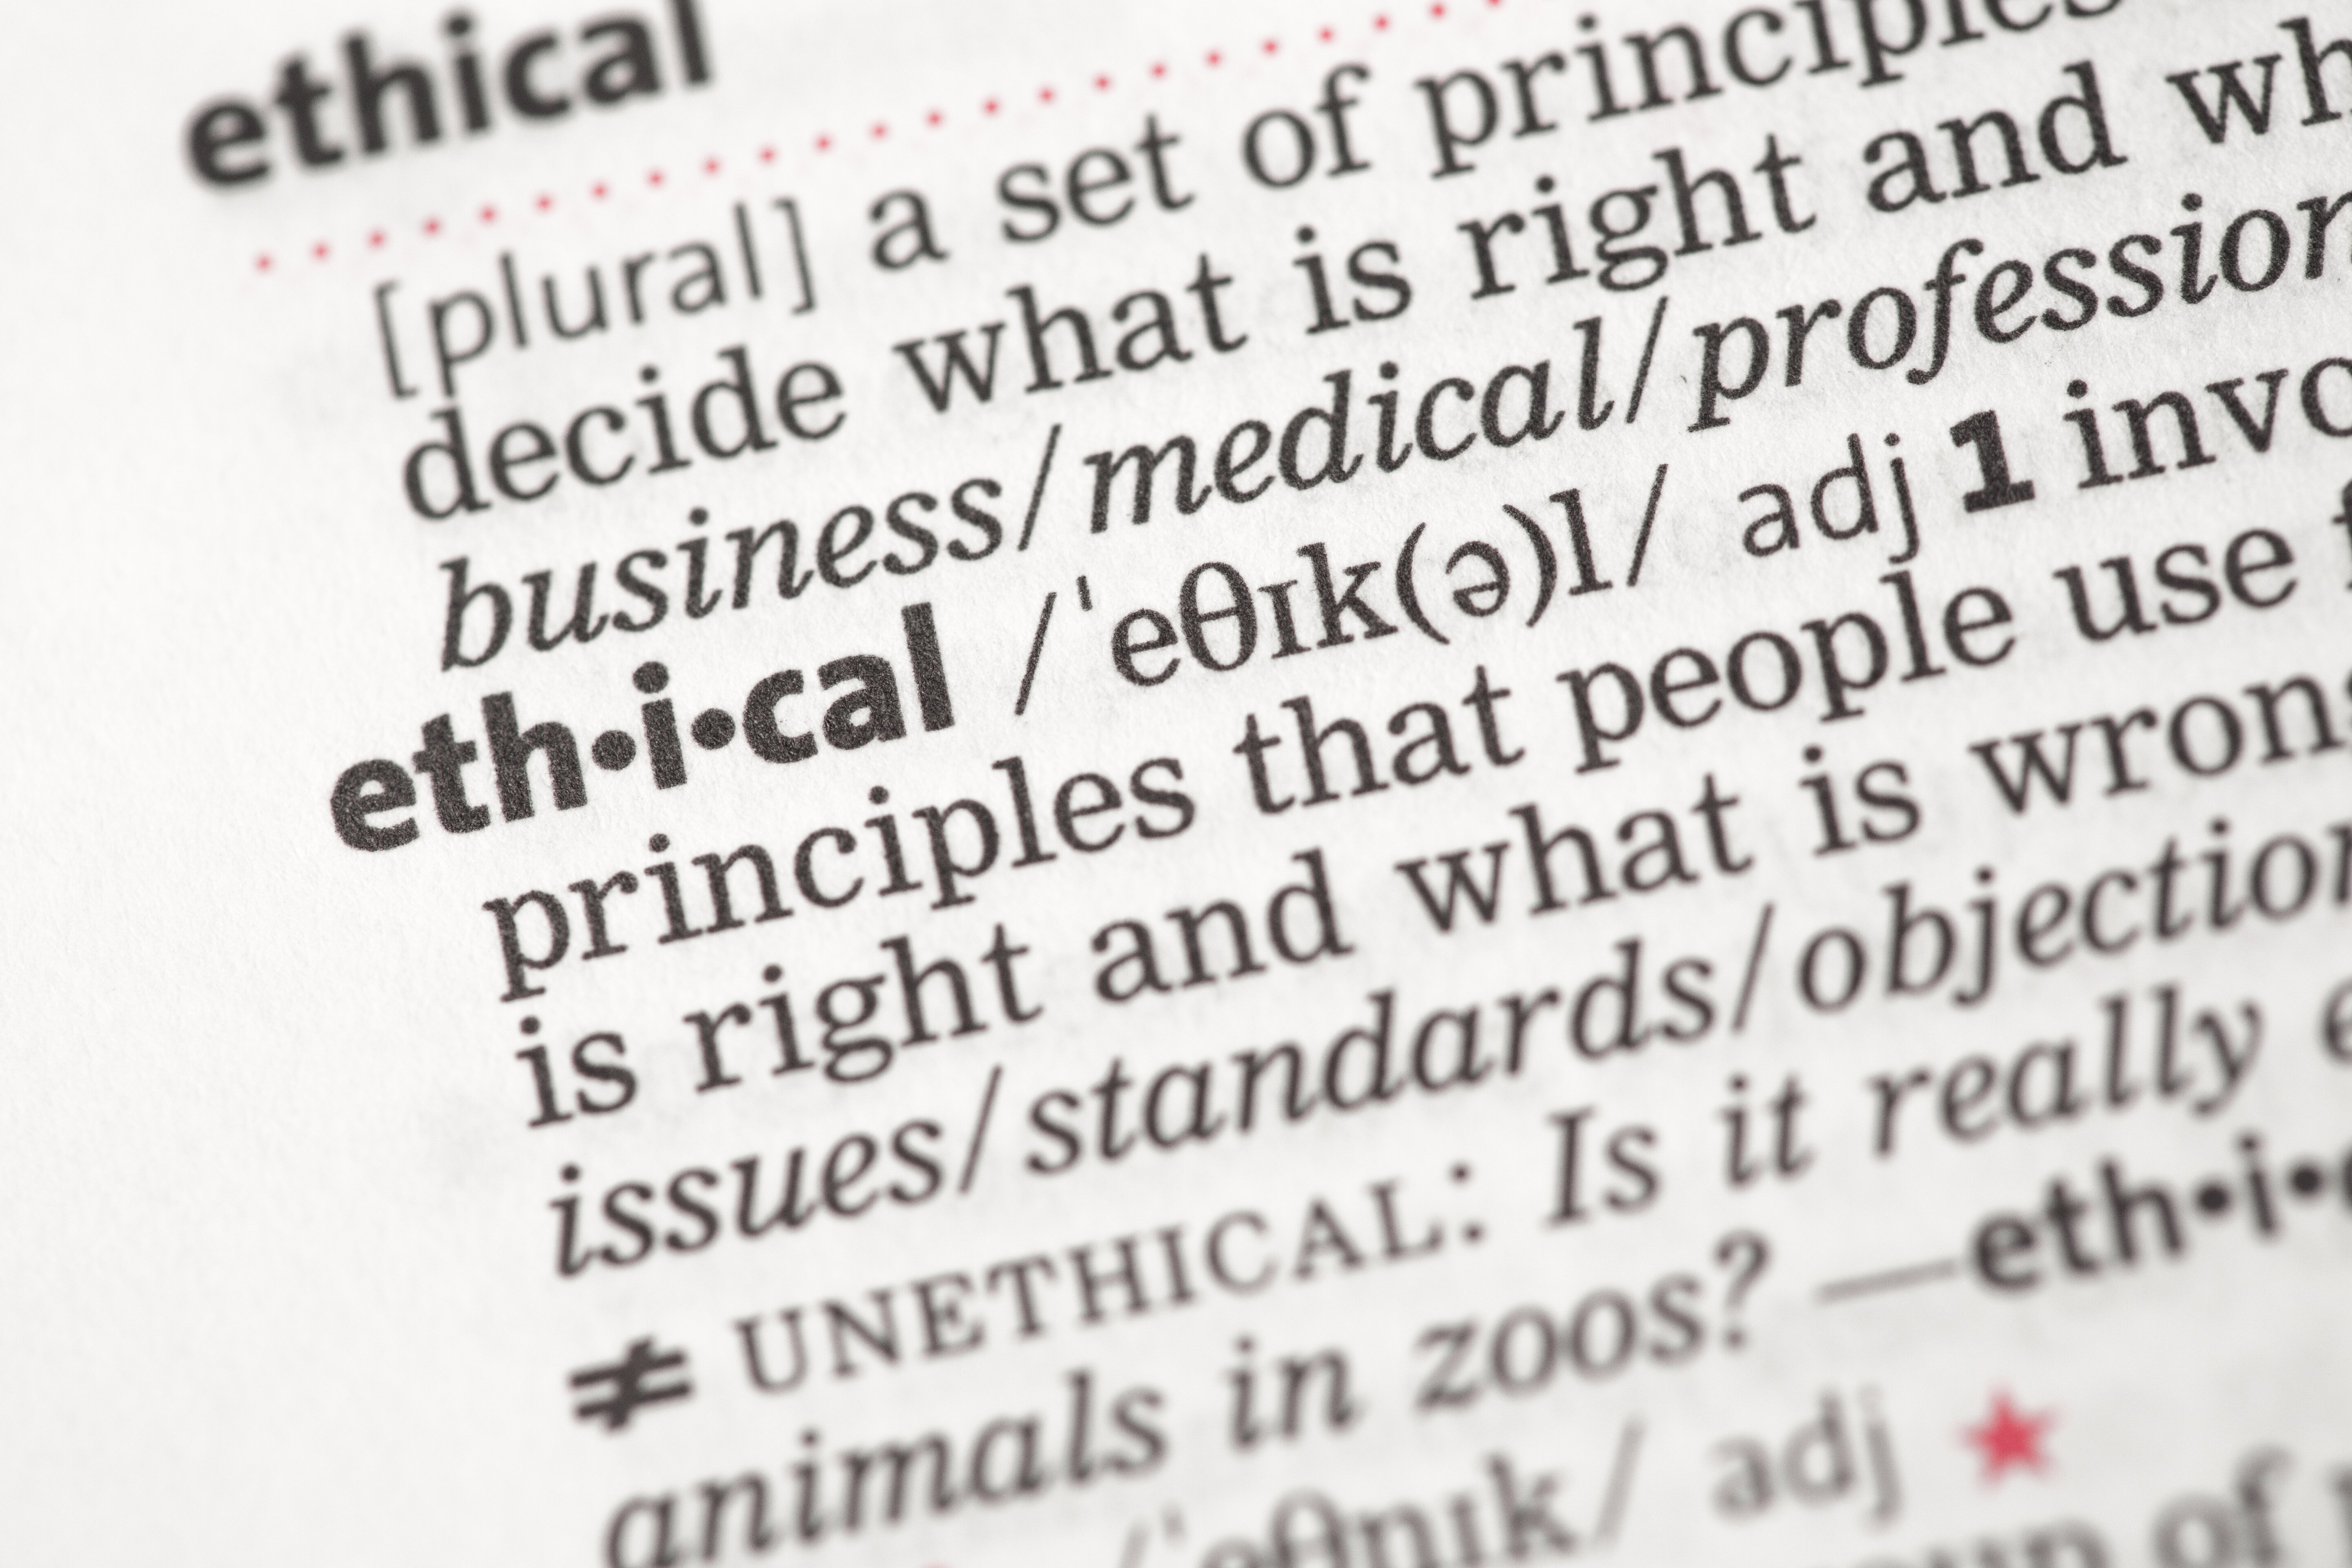 Ethical definition in the dictionary